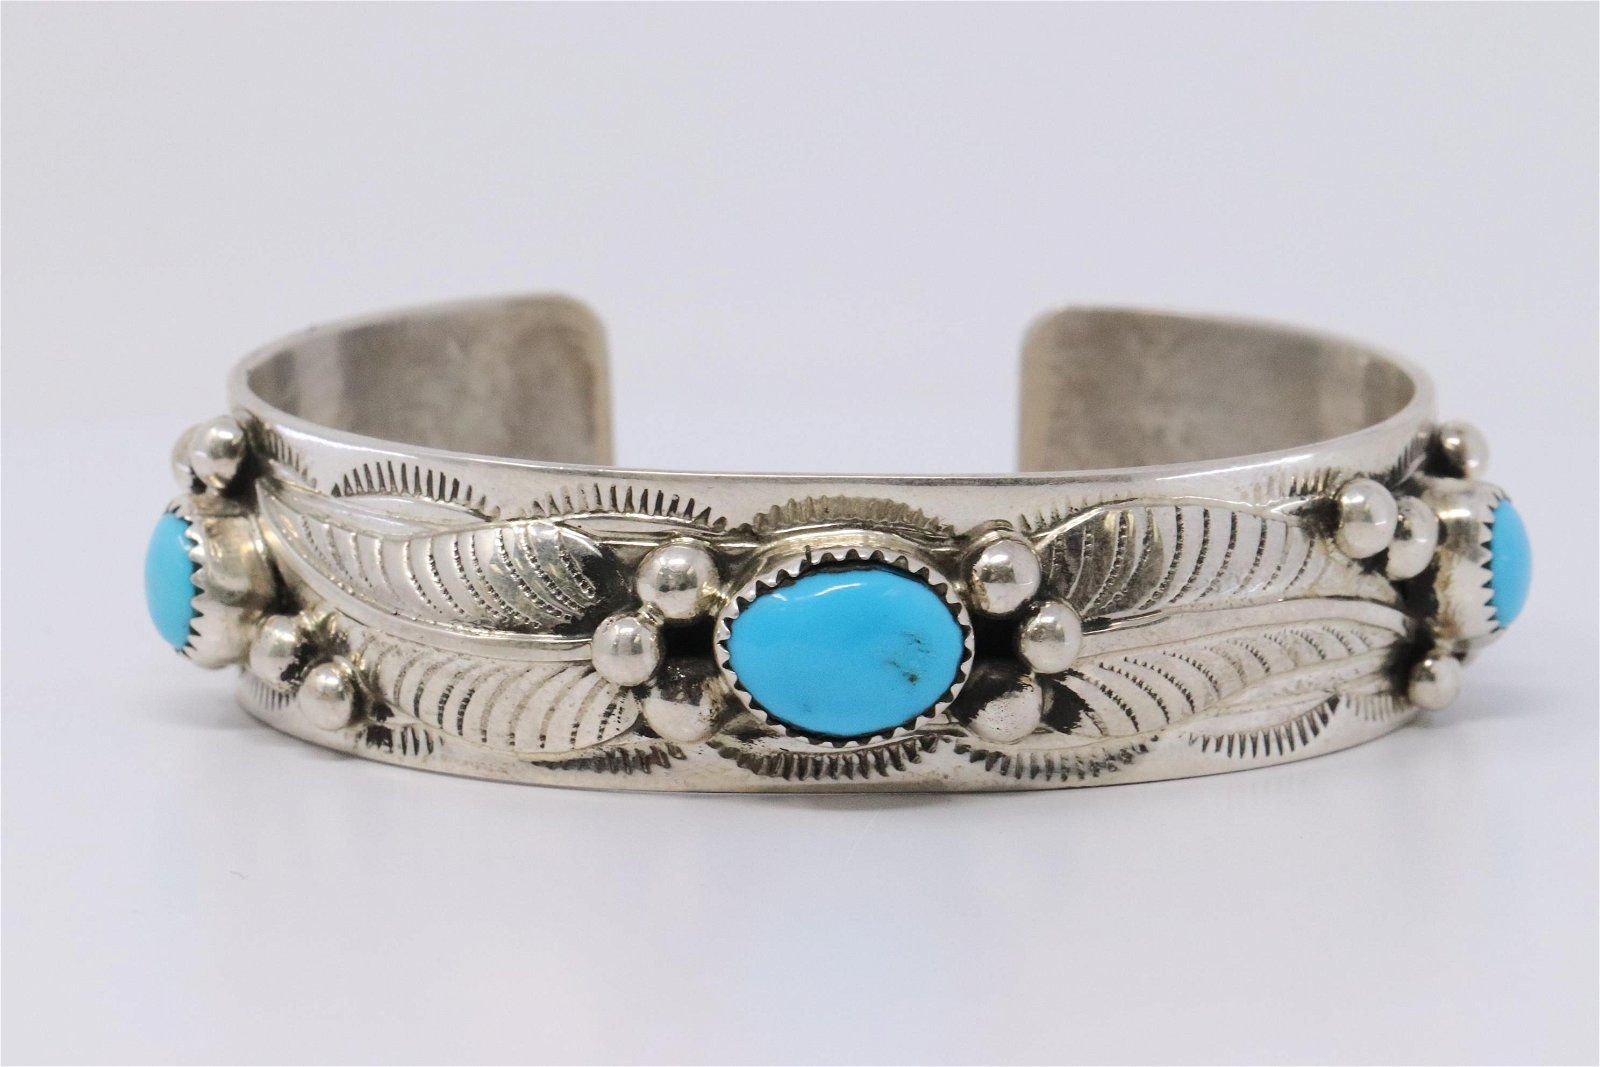 Navajo Indian Sterling Silver Turquoise Stone Bracelet